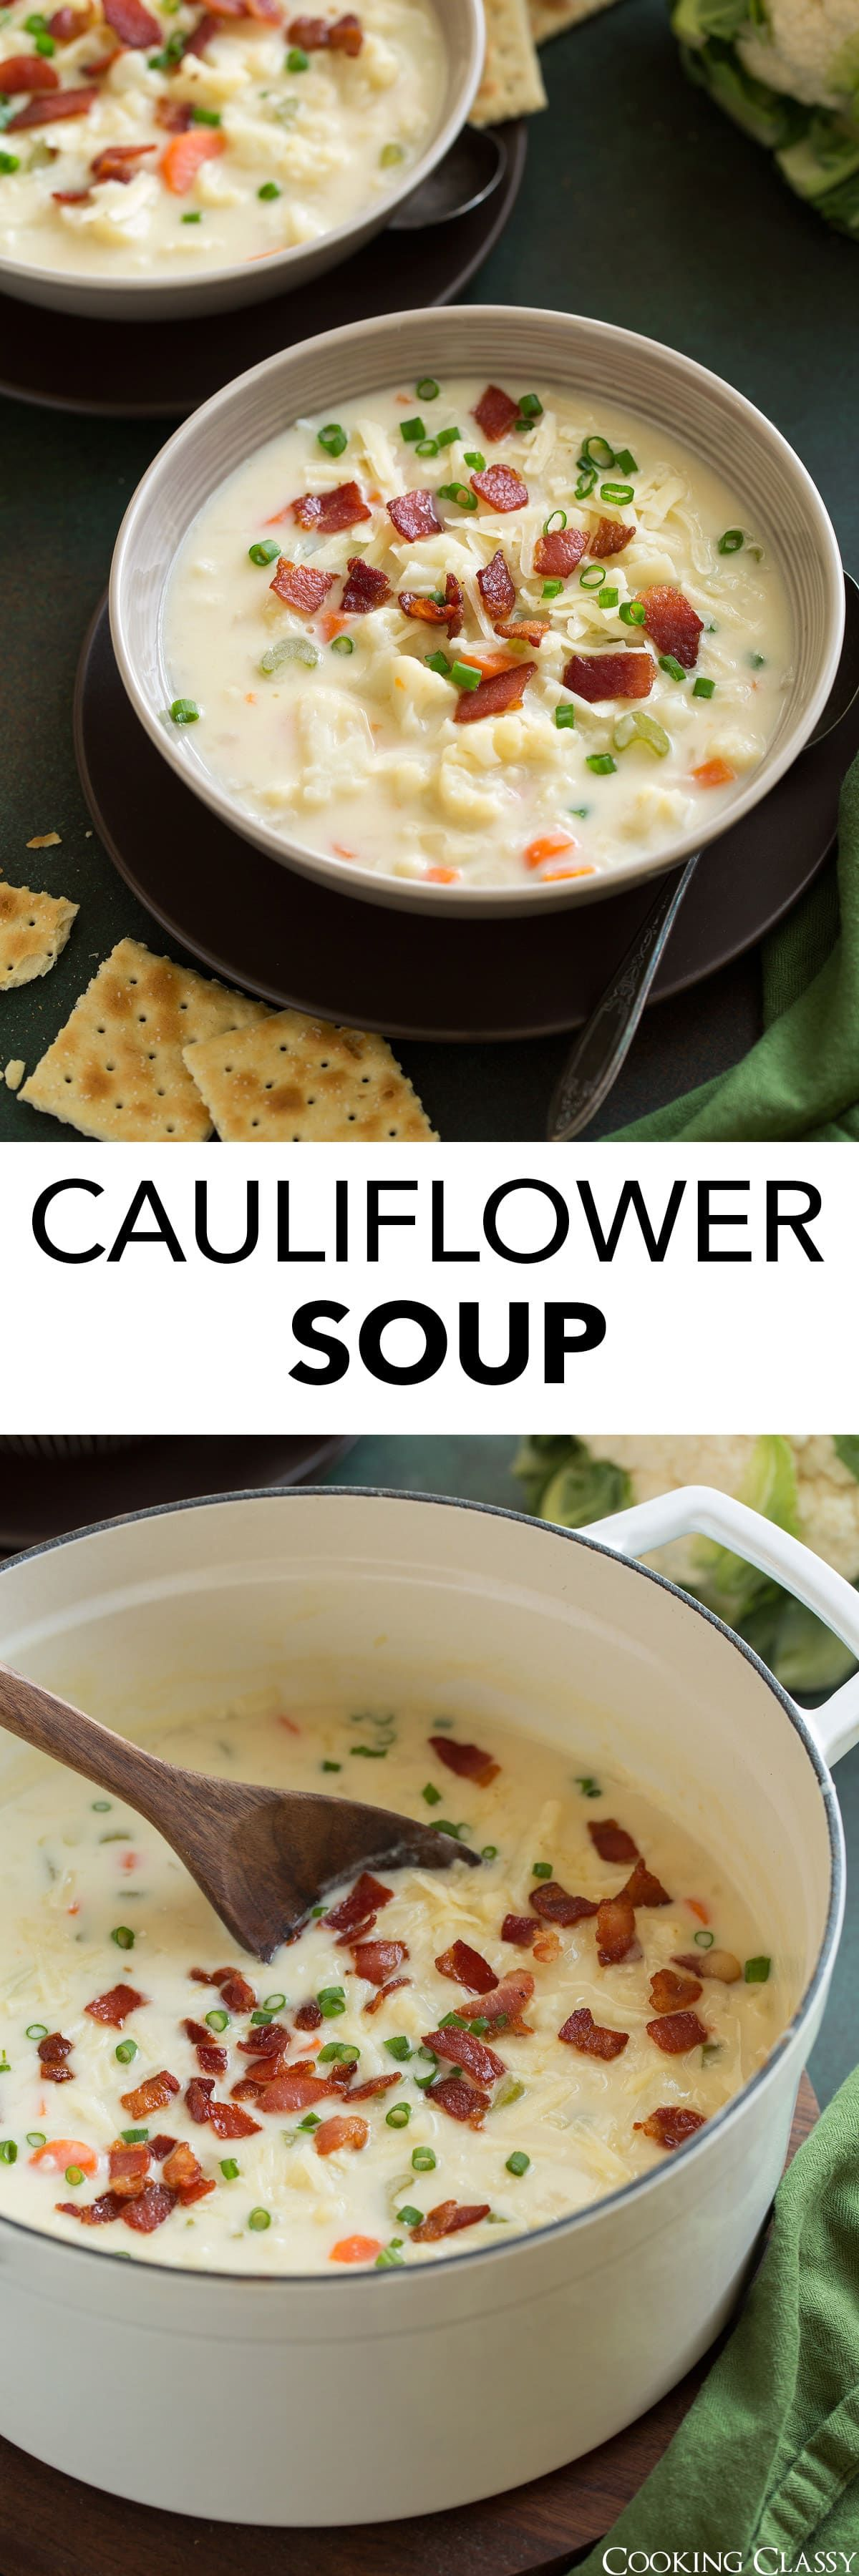 Cauliflower Soup - this is one of the best recipes to make with fresh cauliflower! It's rich and creamy, brimming with veggies and it has the perfect balance of flavors (bring on the cheddar and bacon!). It's just one of those comforting recipes you'll want to make time and time again.